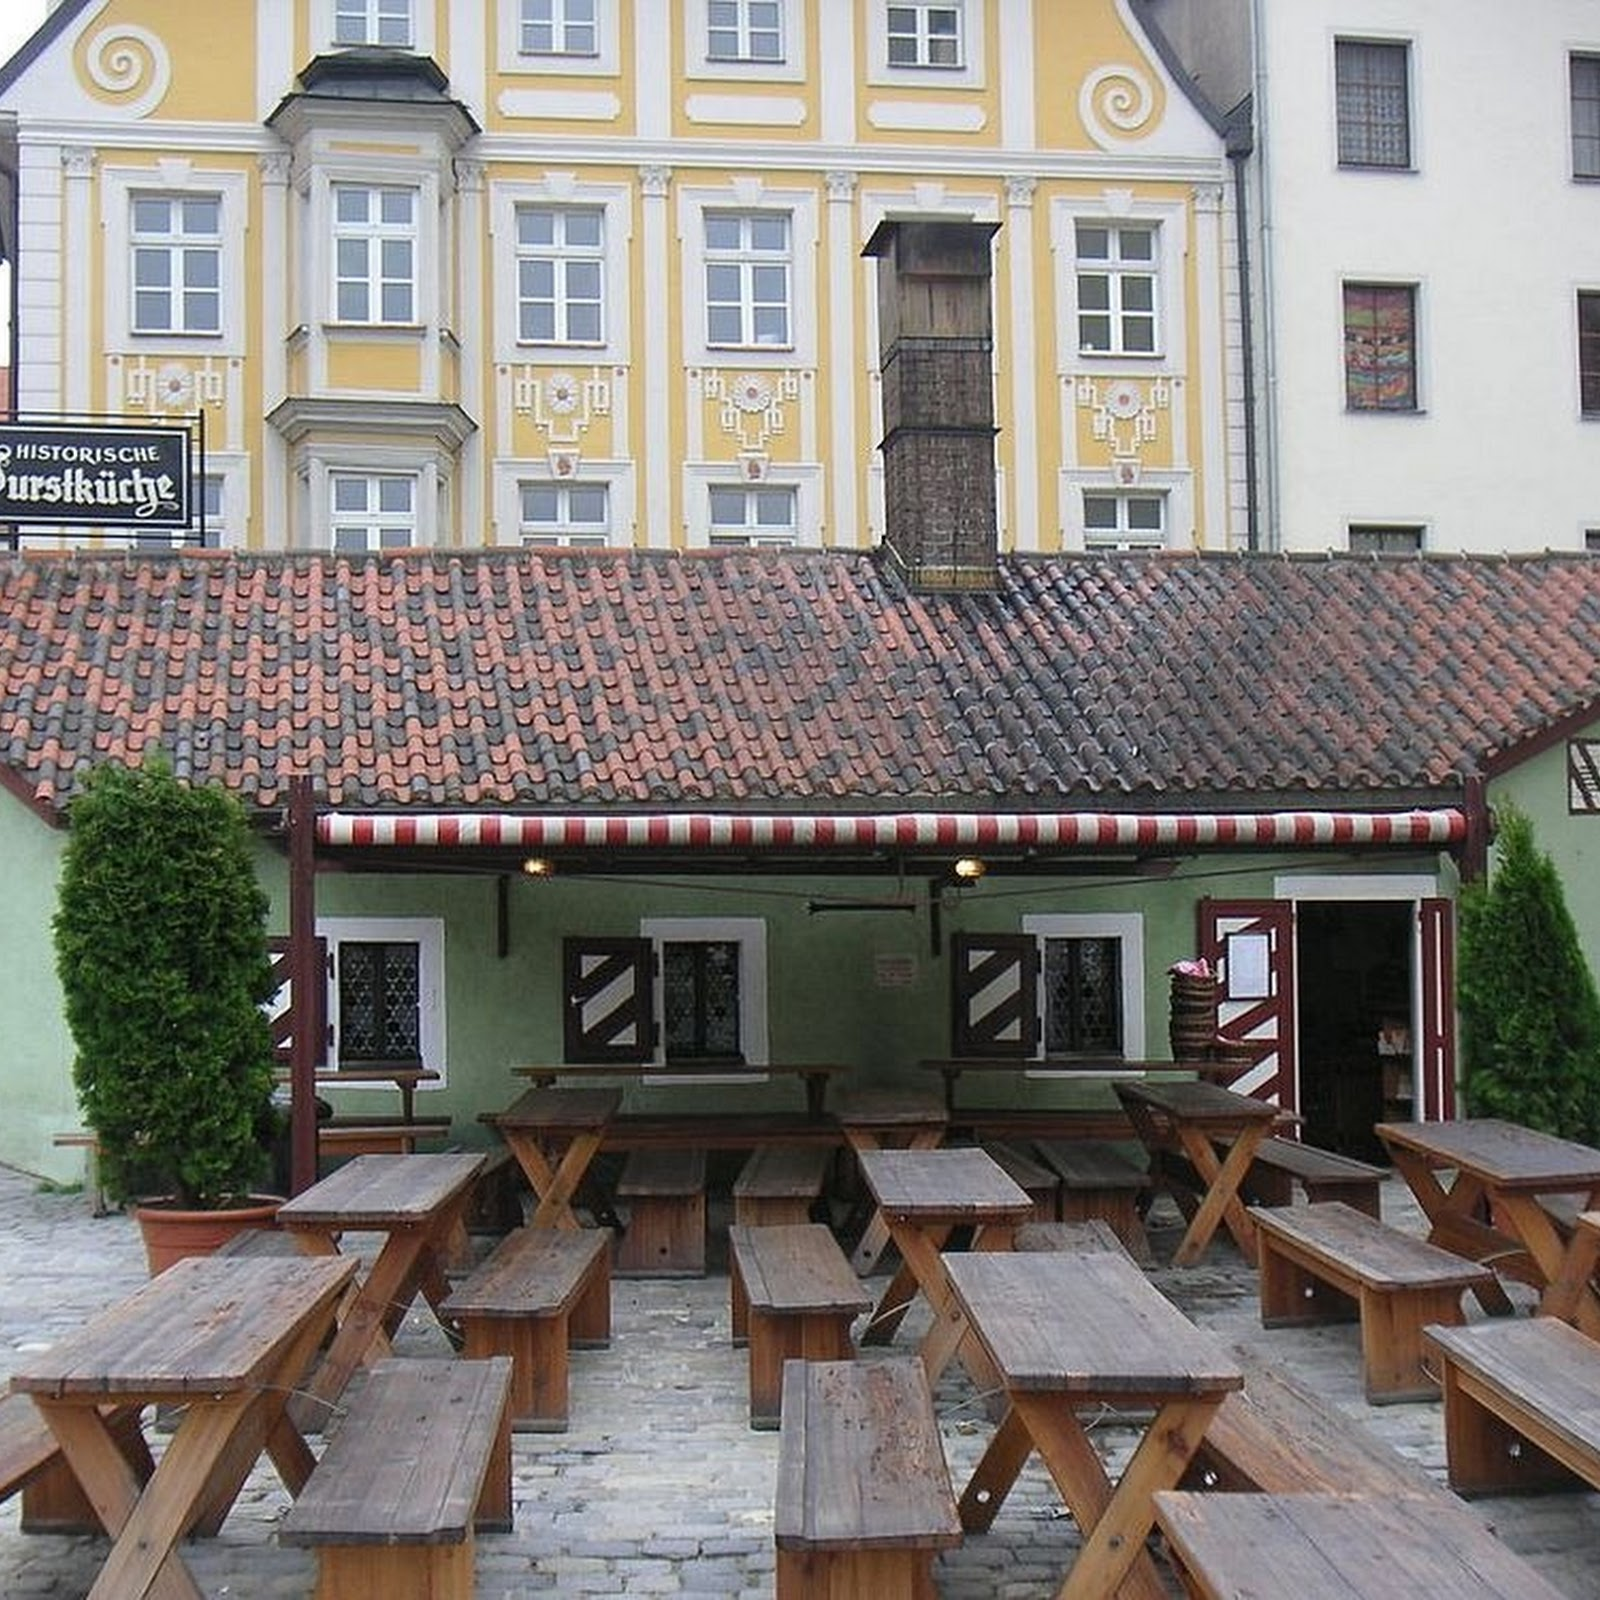 The 870-Year Old Historic Sausage Kitchen of Regensburg